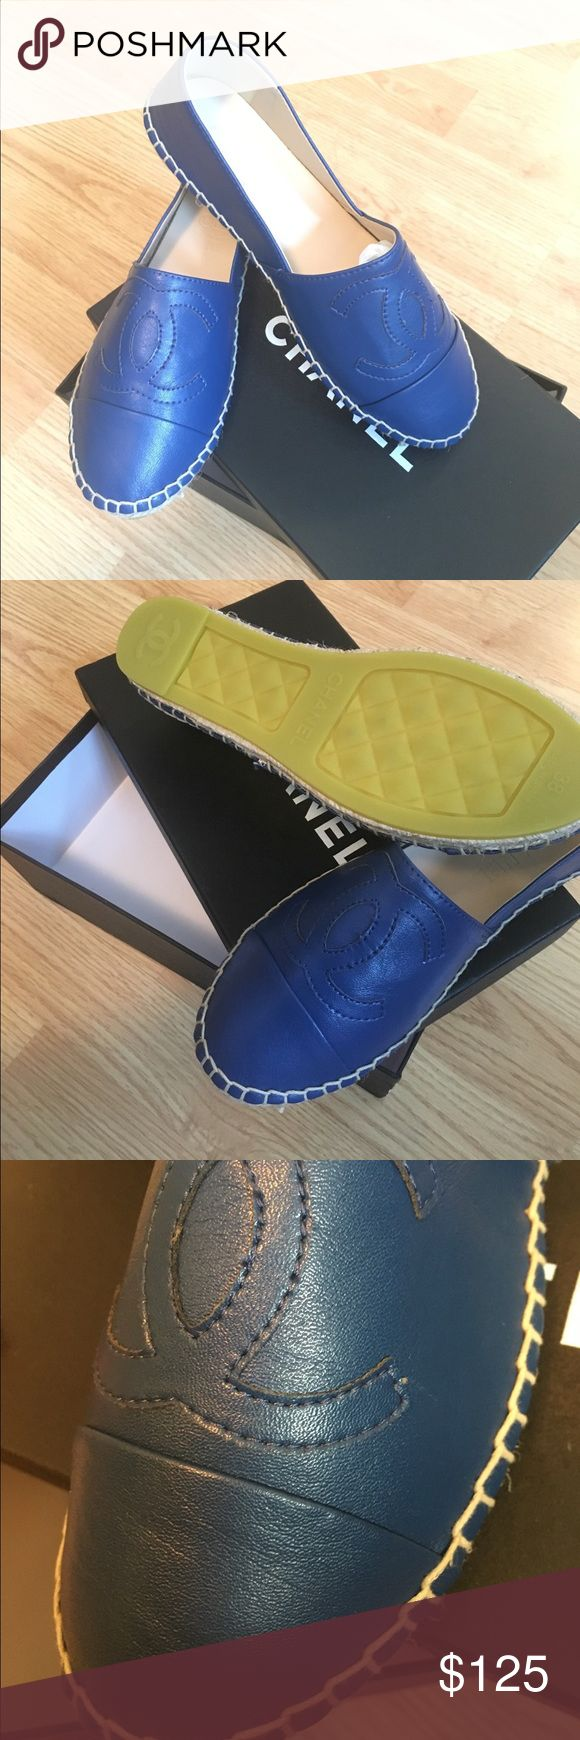 FOR SALE JUST ASK ESPADRILLES leather espadrilles in cobalt blue. Comes with box. CHANEL Shoes Espadrilles